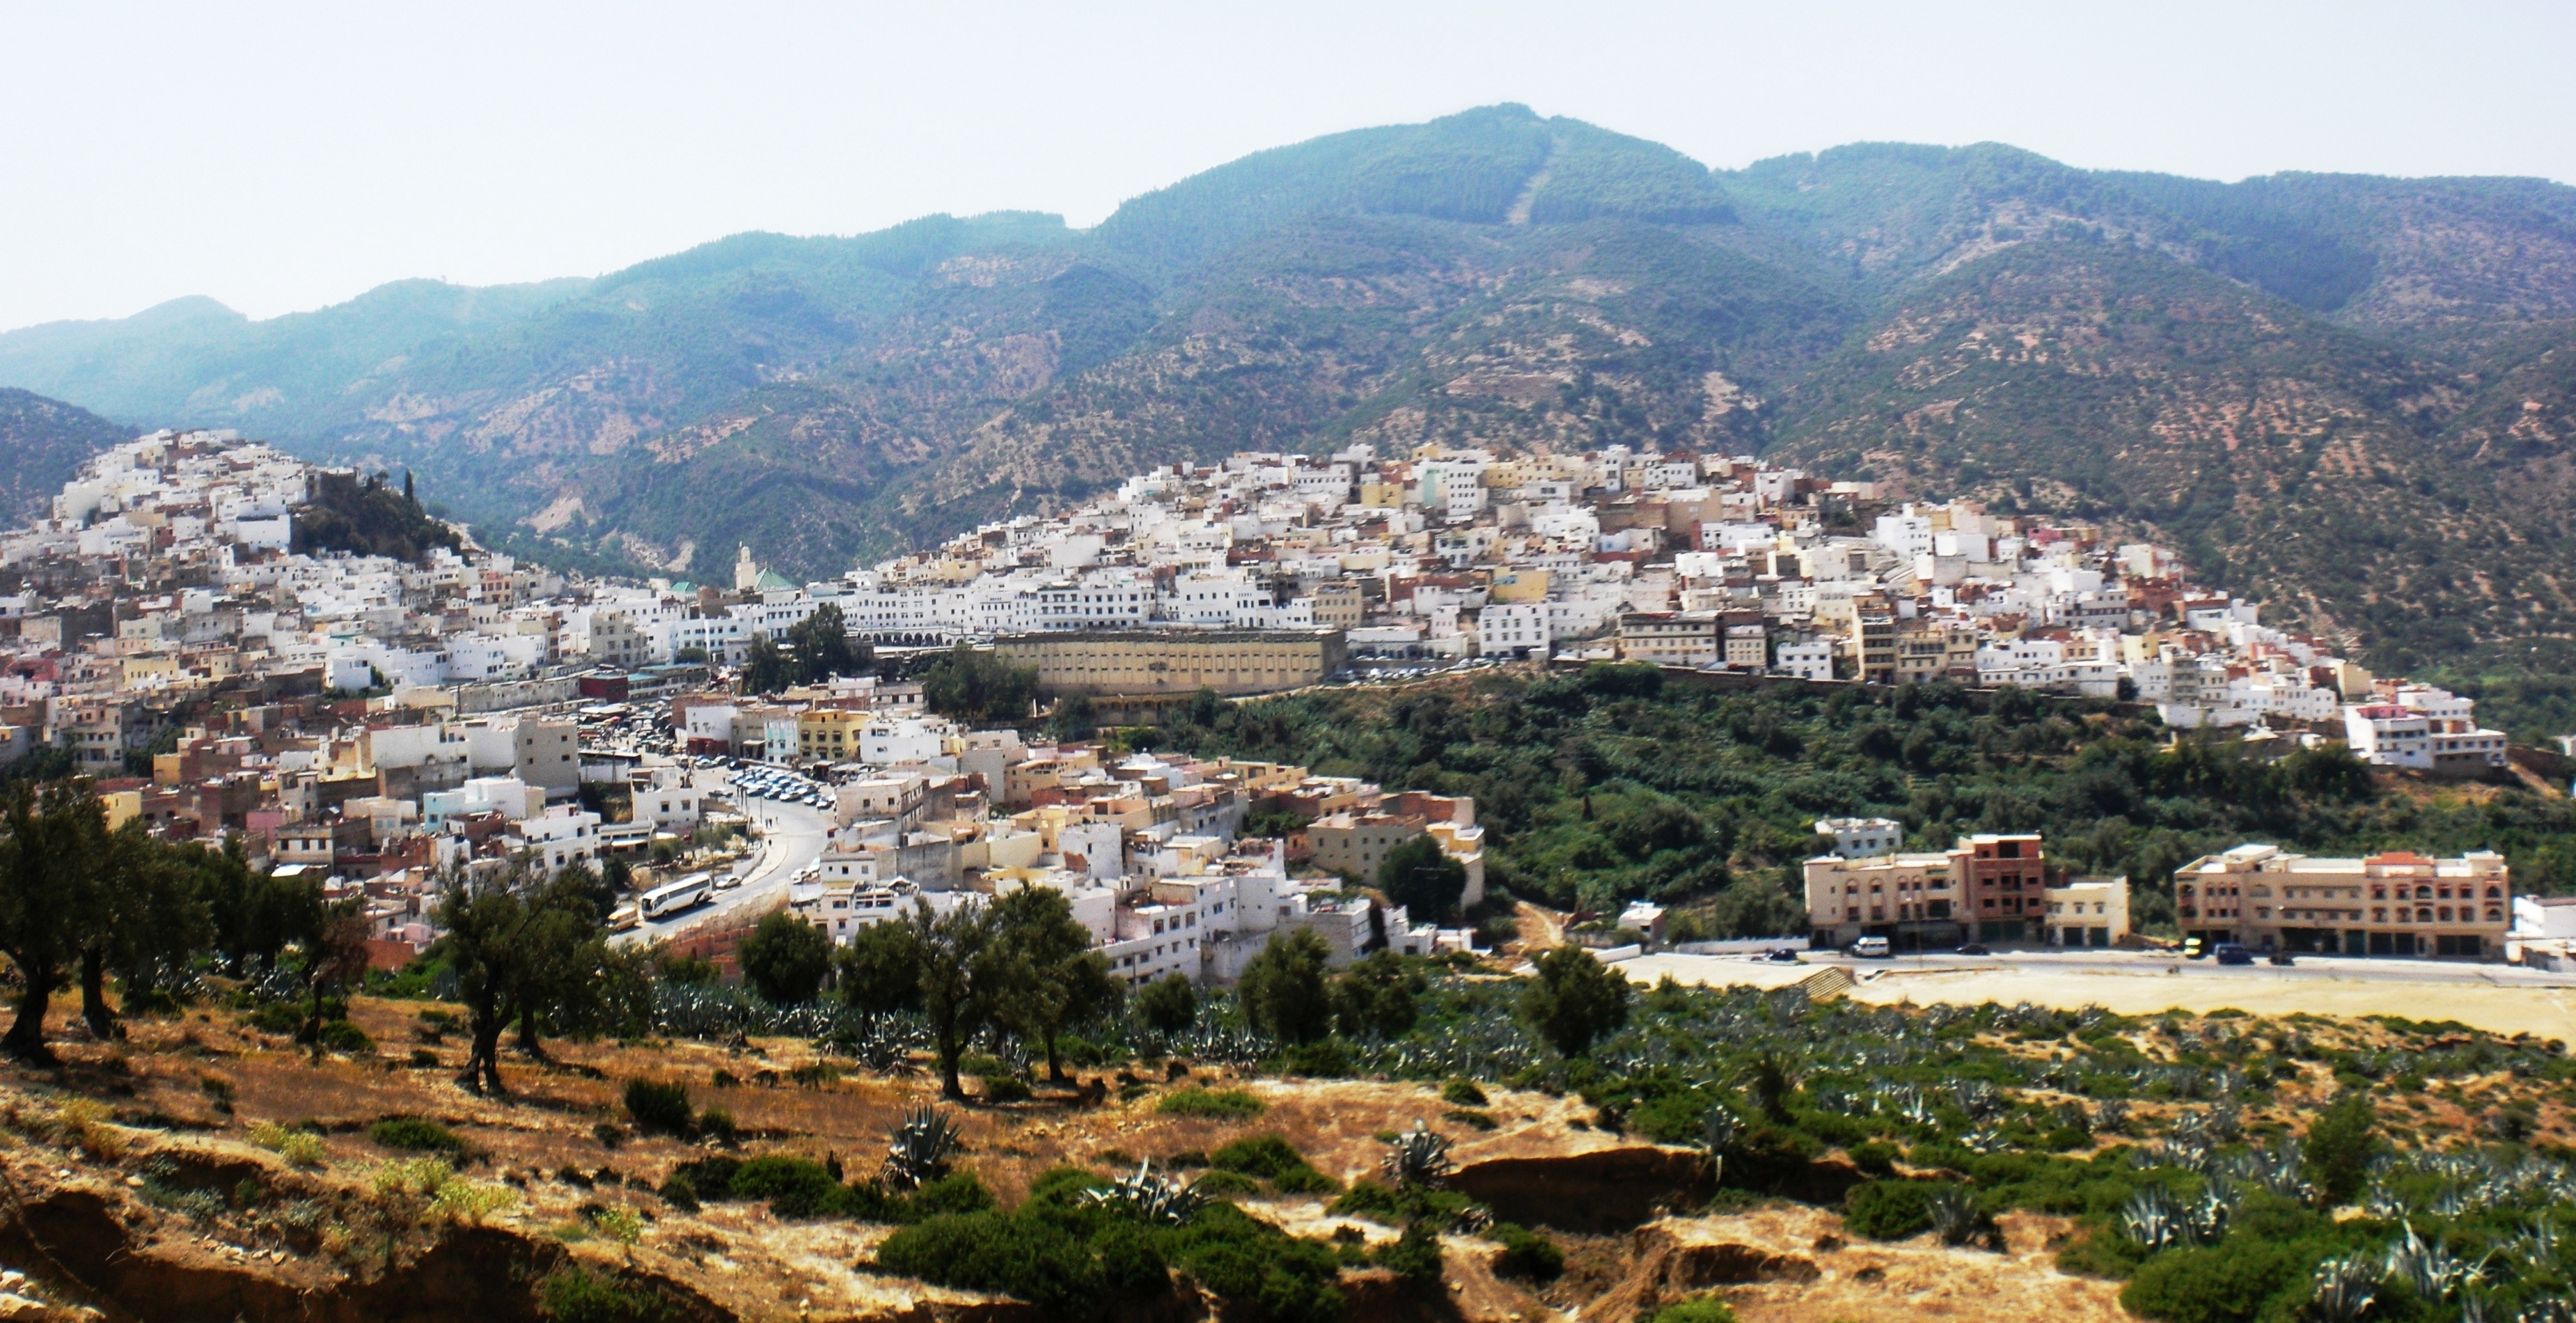 http://upload.wikimedia.org/wikipedia/commons/b/b5/City_of_Fez,_Morocco.jpg